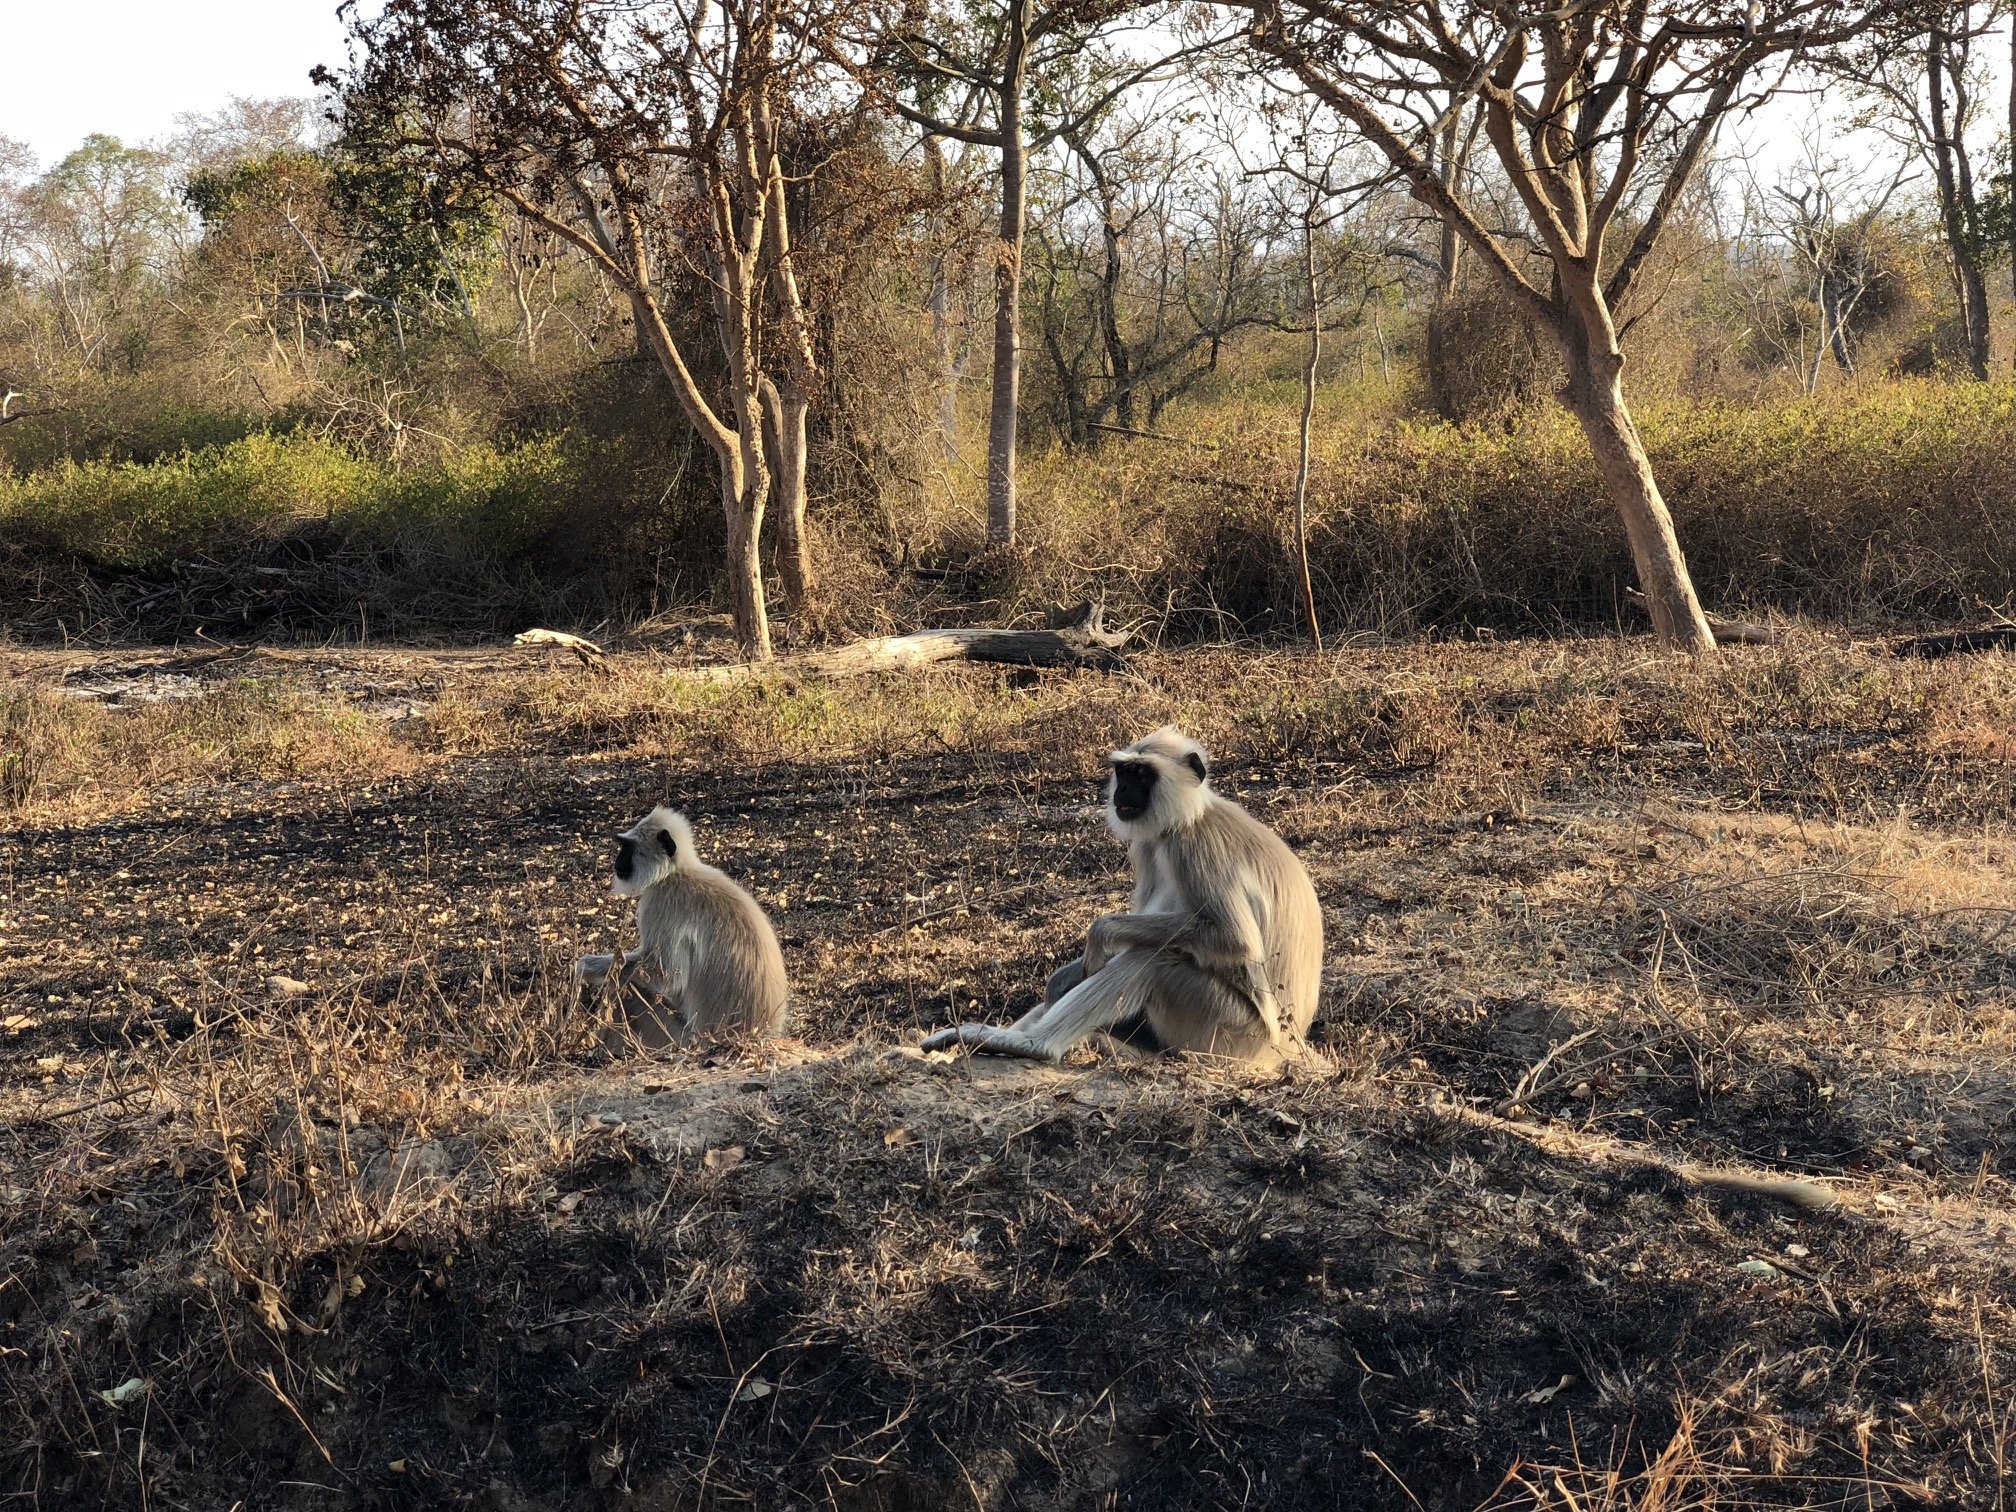 Two monkeys with brown and gray coats and dark black faces sit on a burned patch of ground.